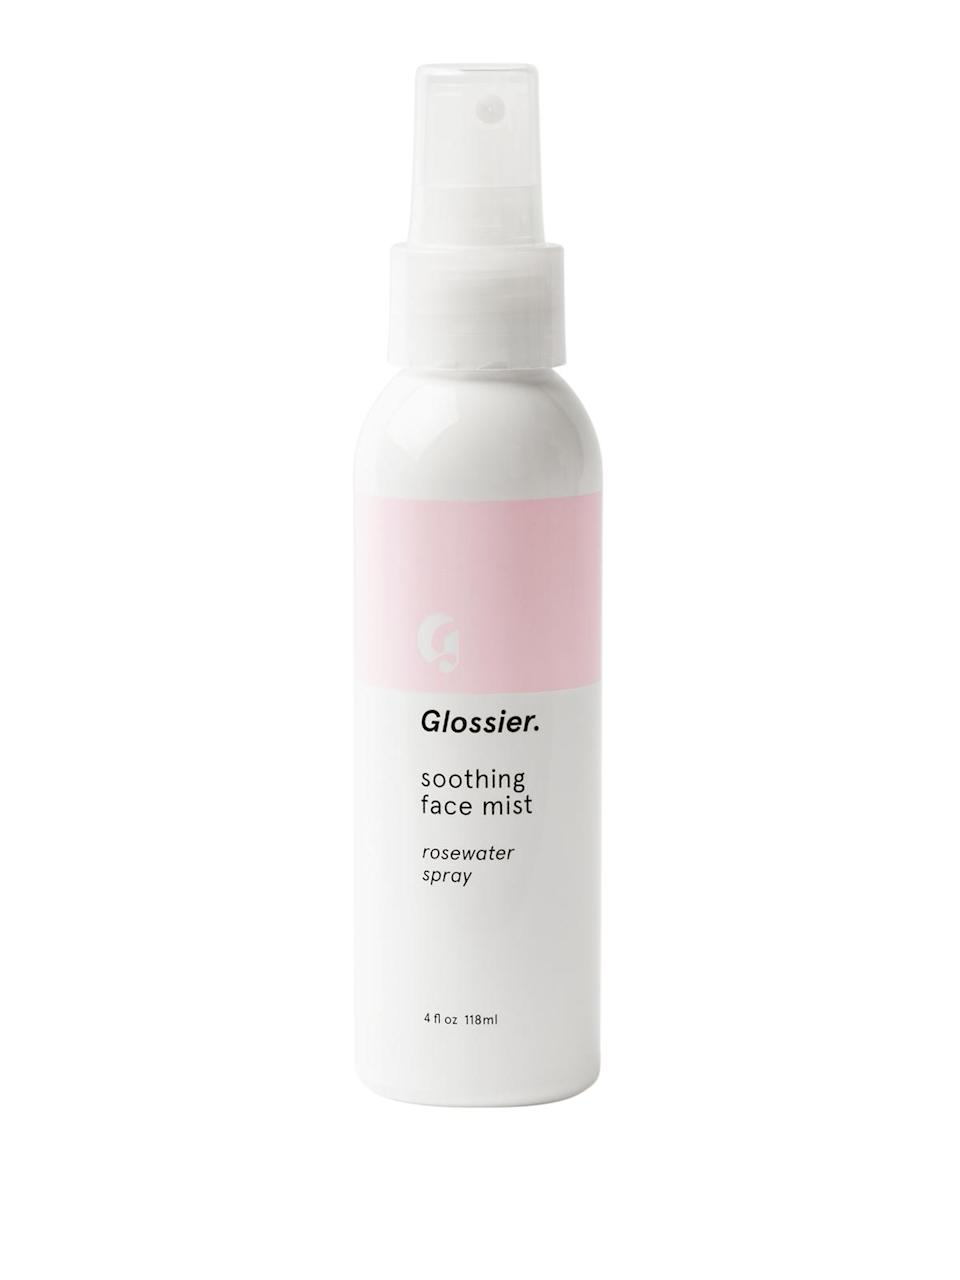 """<h3>Soothing Face Mist<br></h3> <br>Well, it's a face mist — and a very nice one, at that, comprised mostly of rosewater, glycerin, and honeysuckle extract.<br><br><strong>Glossier</strong> Soothing Face Mist, $, available at <a href=""""https://go.skimresources.com/?id=30283X879131&url=https%3A%2F%2Fglossier.sjv.io%2FBVYQW"""" rel=""""nofollow noopener"""" target=""""_blank"""" data-ylk=""""slk:Glossier"""" class=""""link rapid-noclick-resp"""">Glossier</a><br>"""